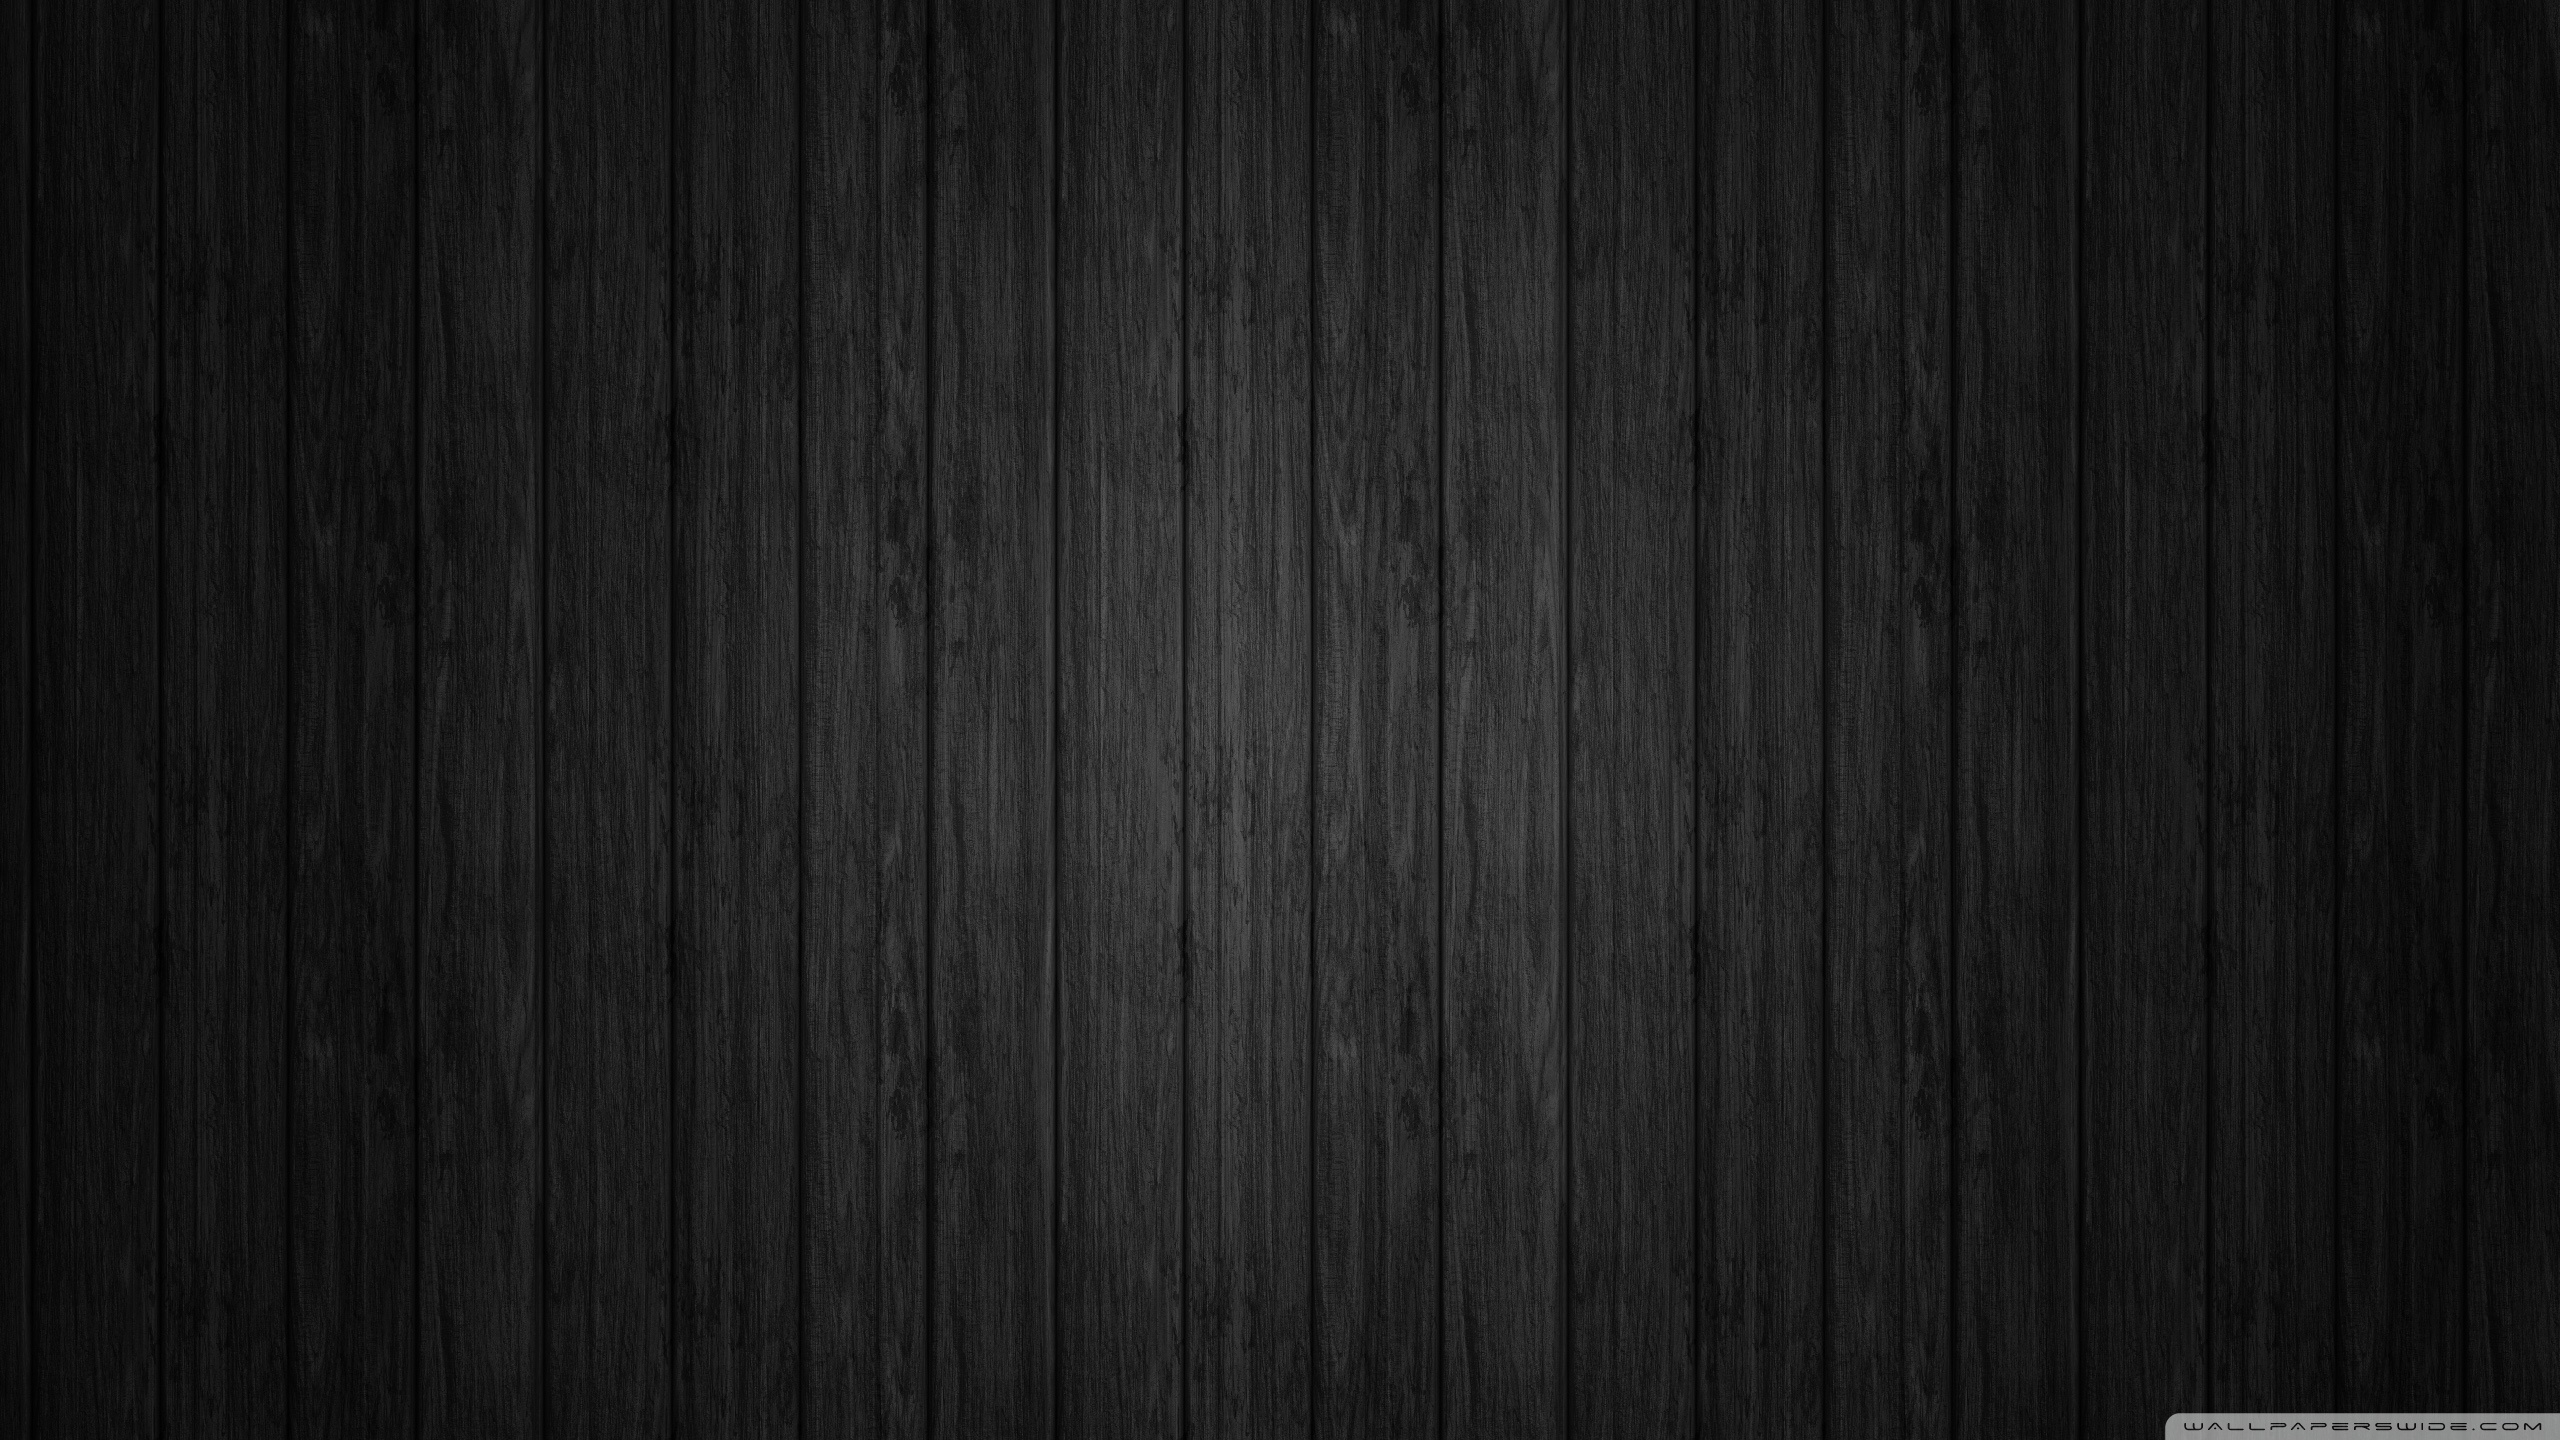 2560x1440 Black Wallpaper - WallpaperSafari